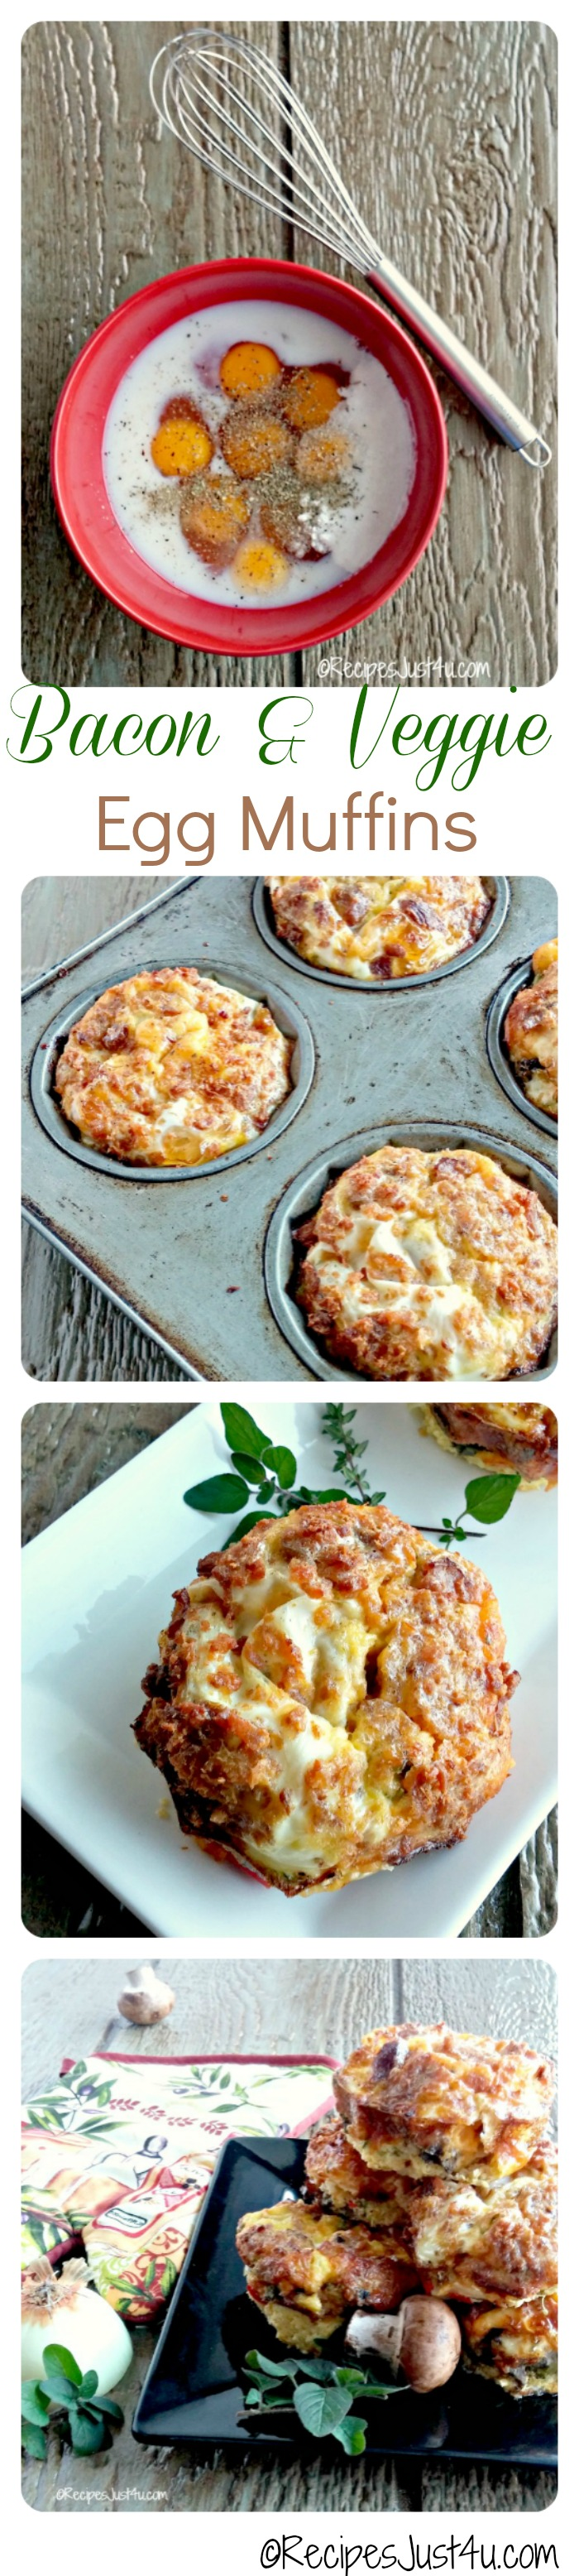 Breakfast Egg muffins are a super easy and fast breakfast option. They are very simple to prepare and make a great breakfast on the go. recipesjust4u.com